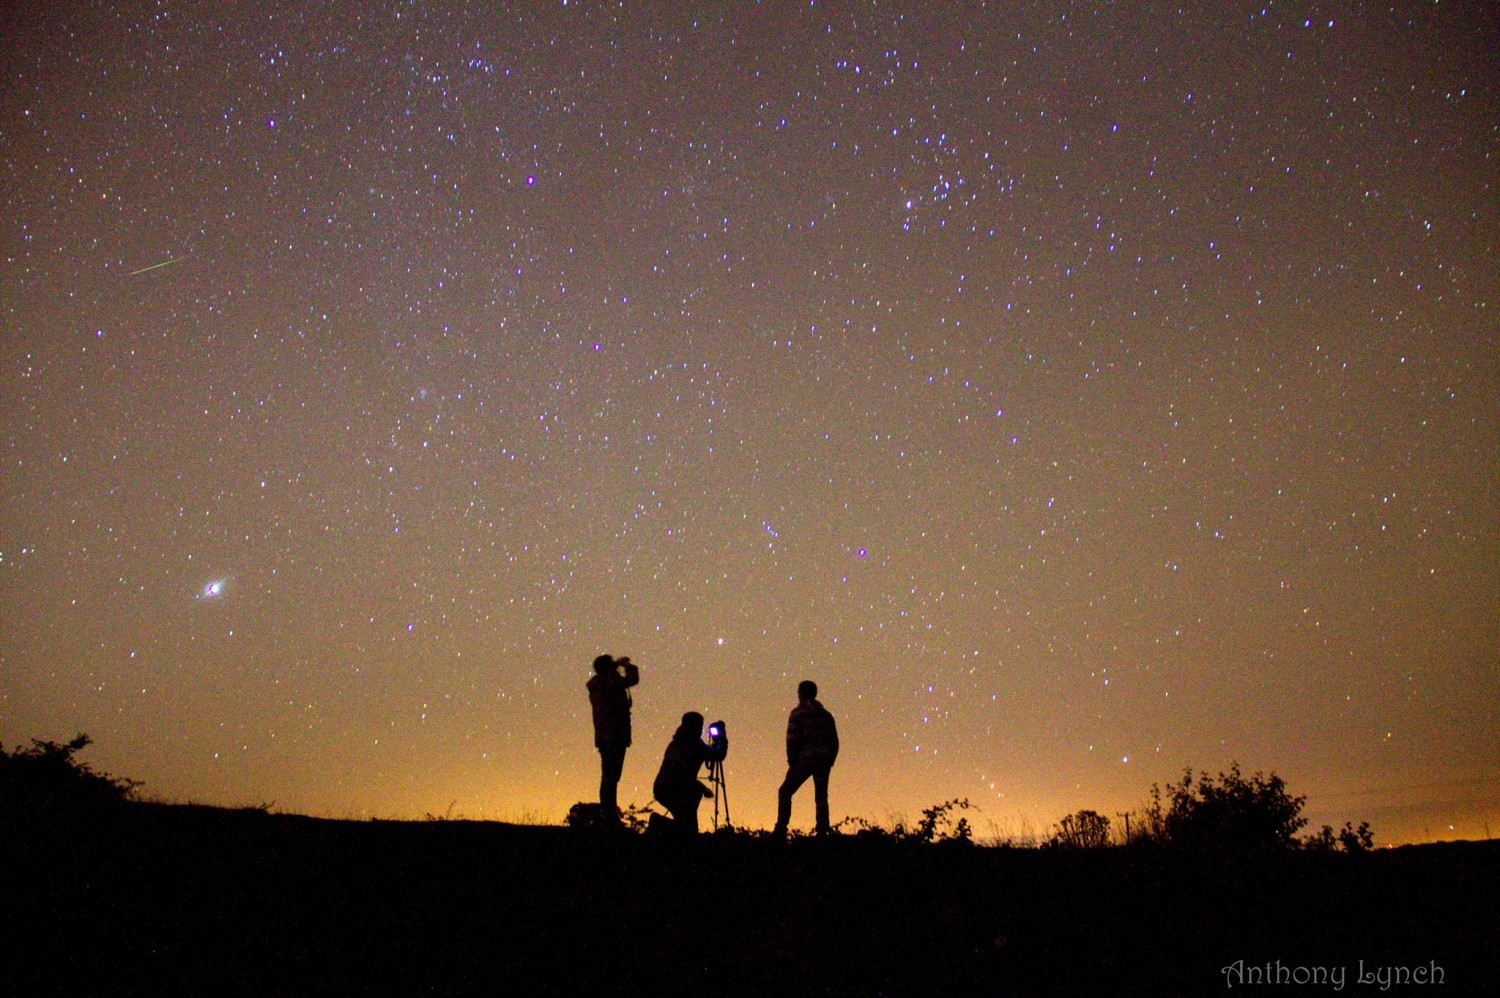 View larger. | Anthony Lynch captured this image in Wicklow, Ireland. The bright object on the left is Jupiter. See the green meteor above Jupiter? This is the predawn sky in early September, 2013.